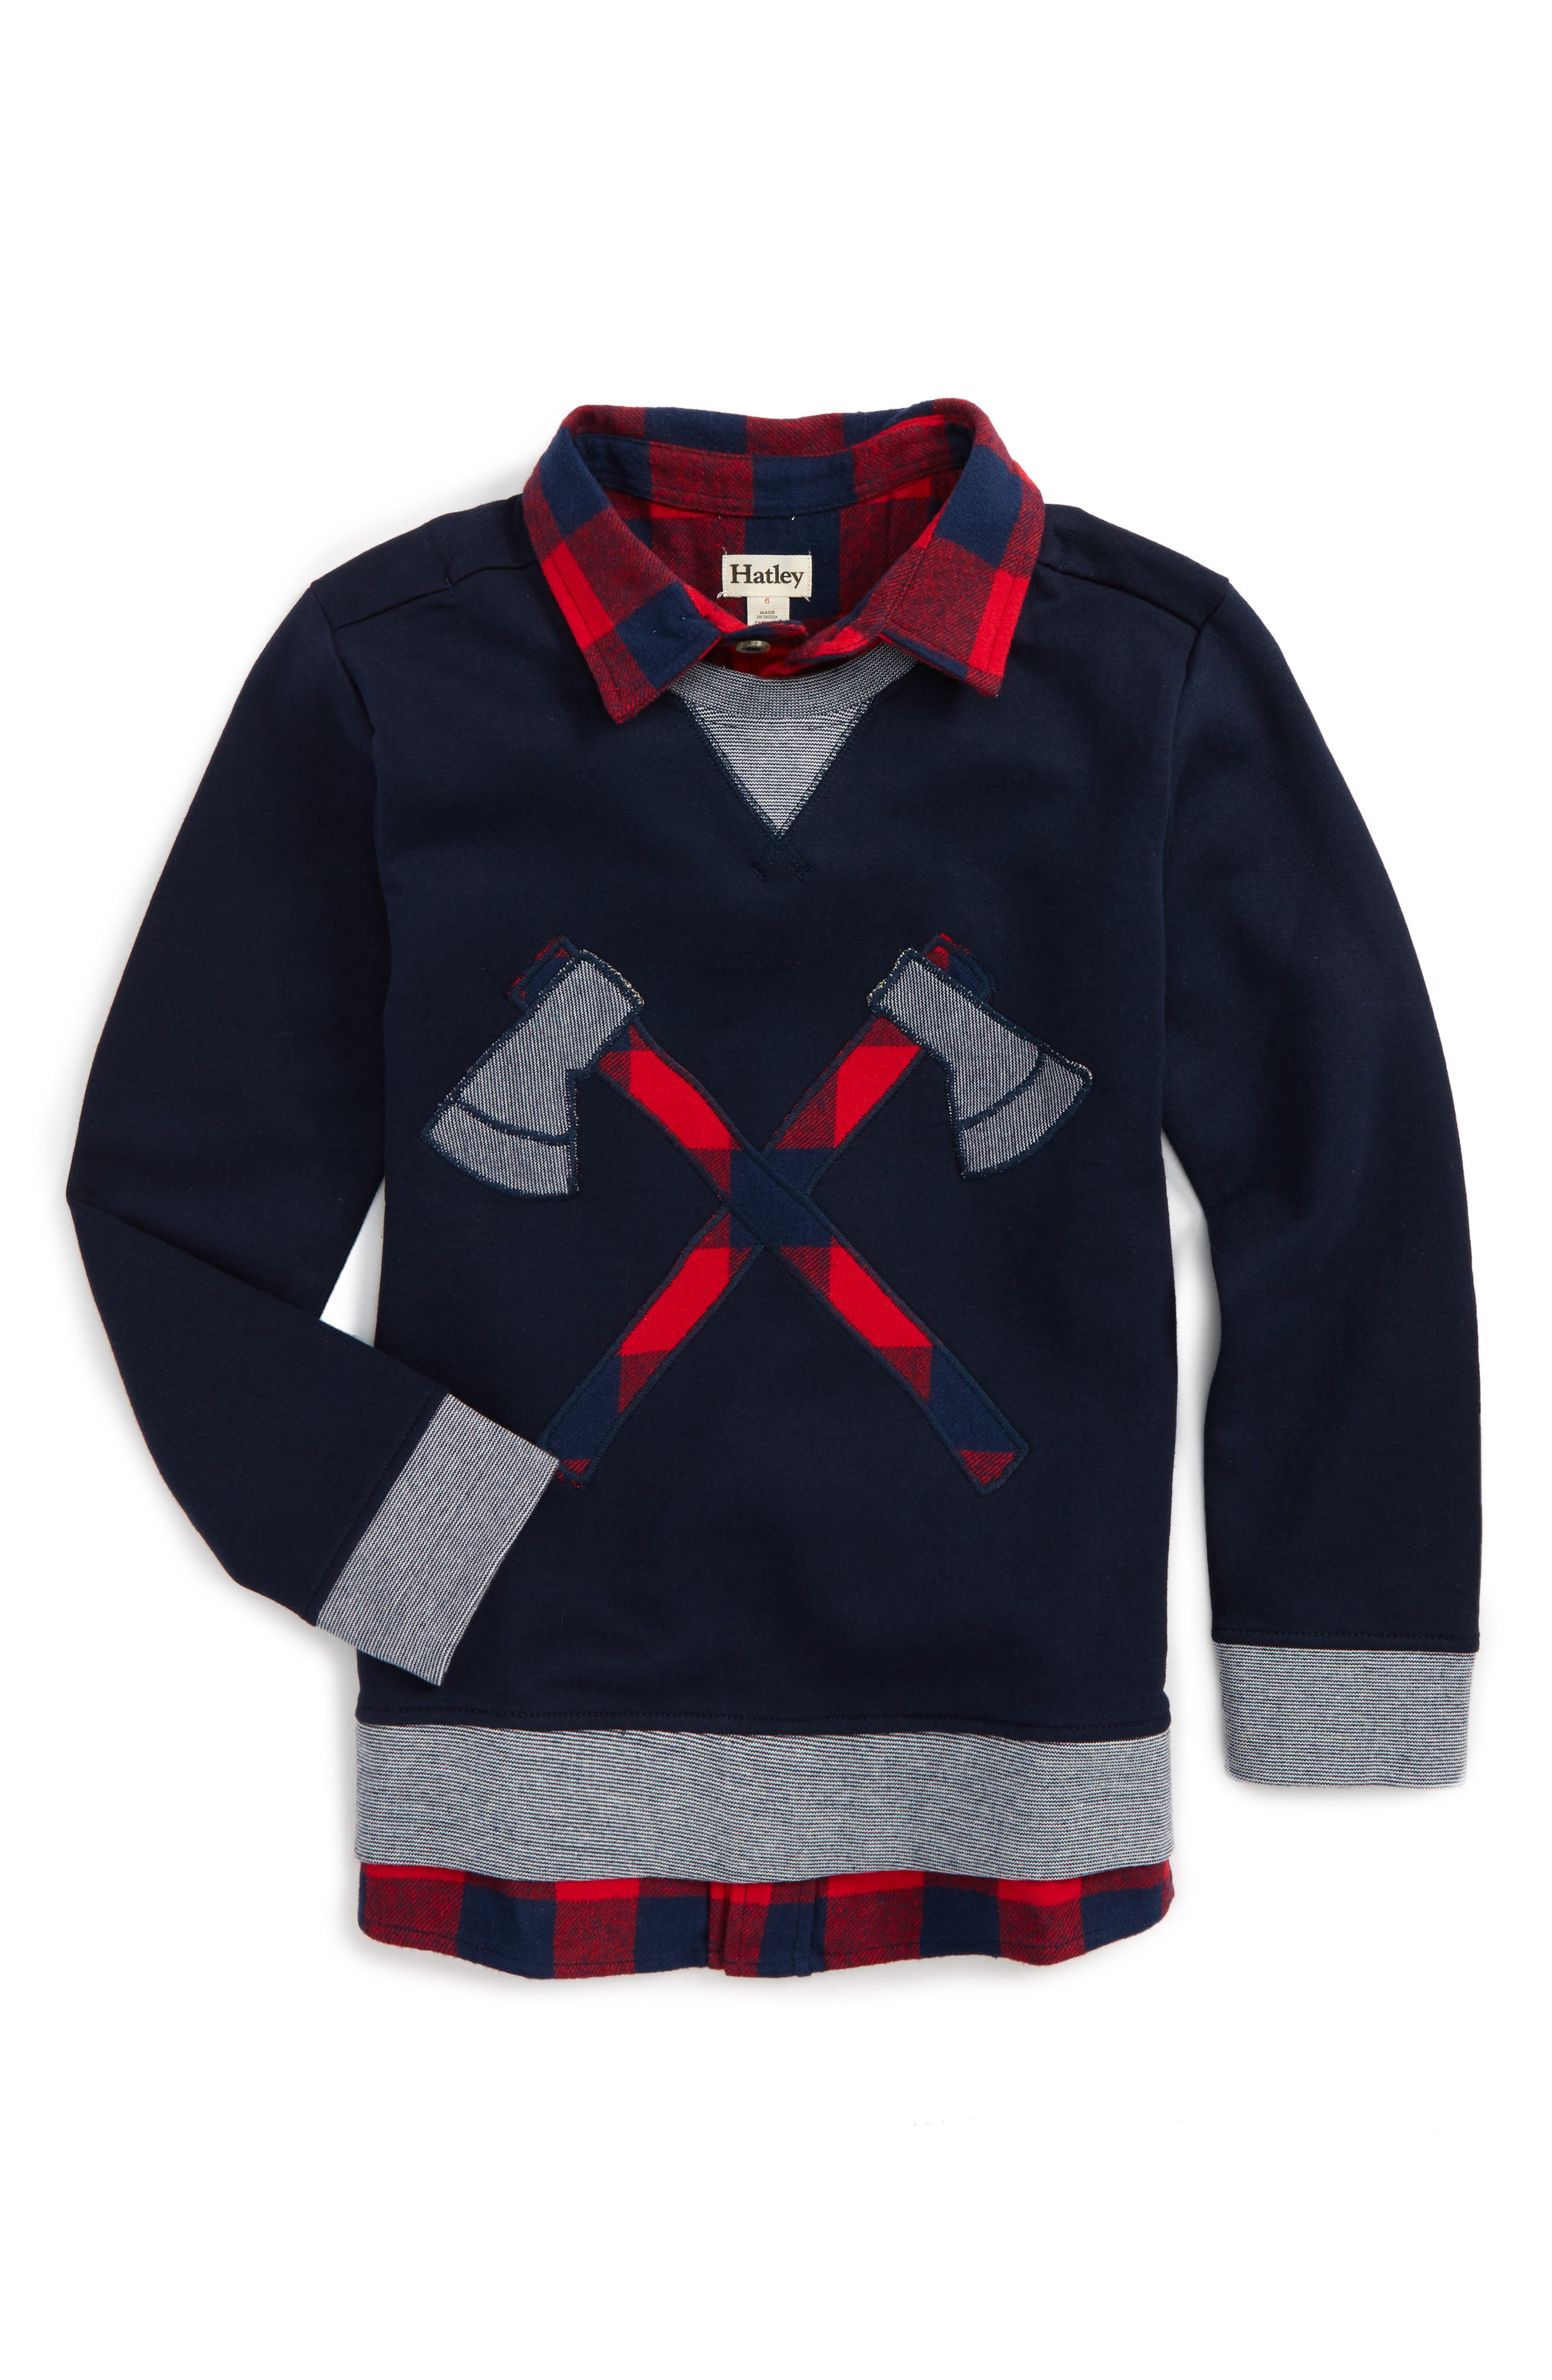 Main Image - Hatley Fooler Sweater (Toddler Boys, Little Boys & Big Boys)